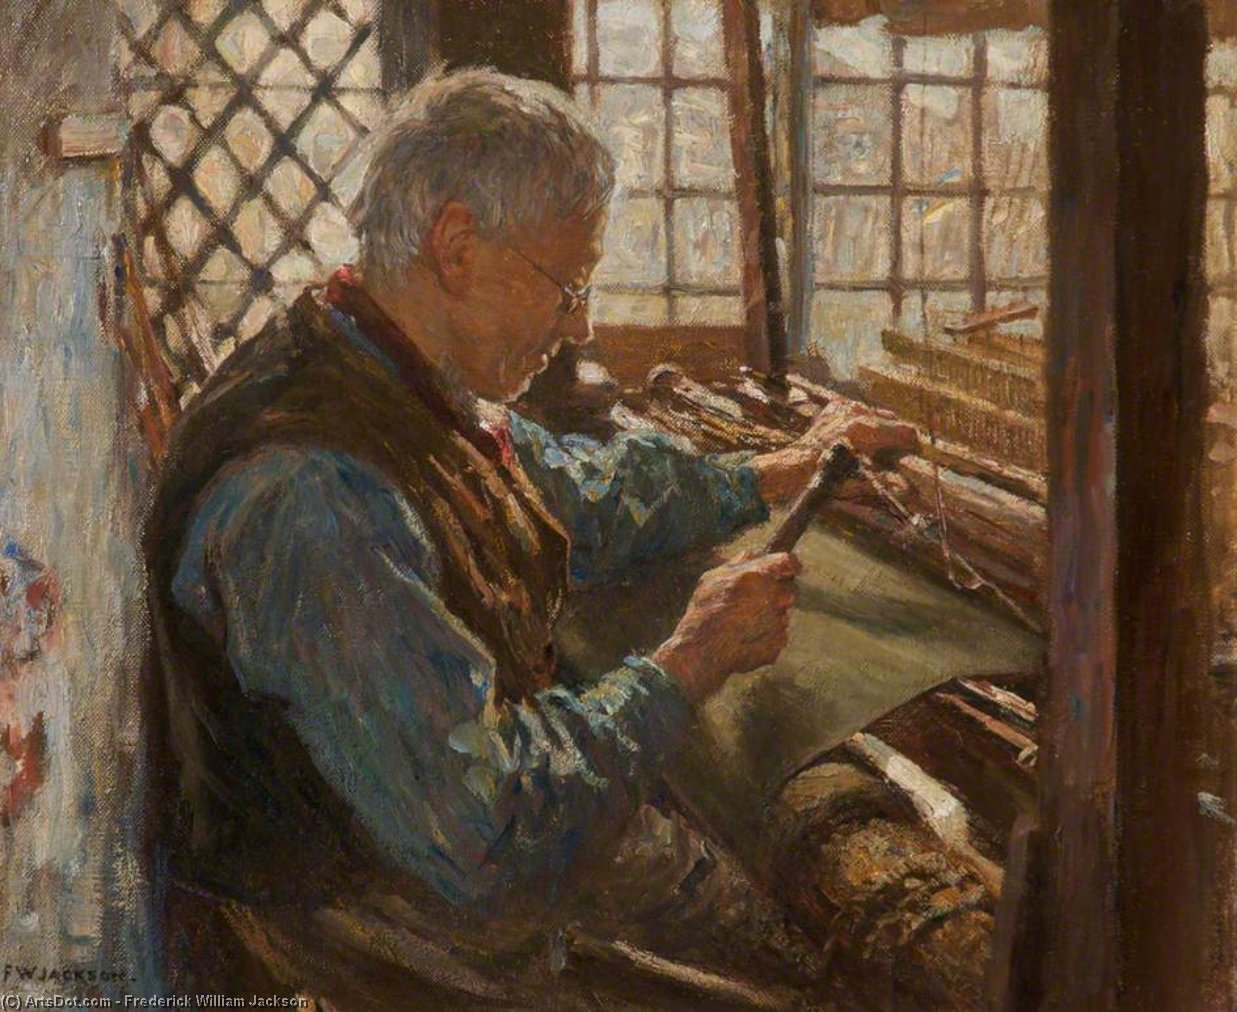 The Old Weaver by Frederick William Jackson (1843-1942, United States)